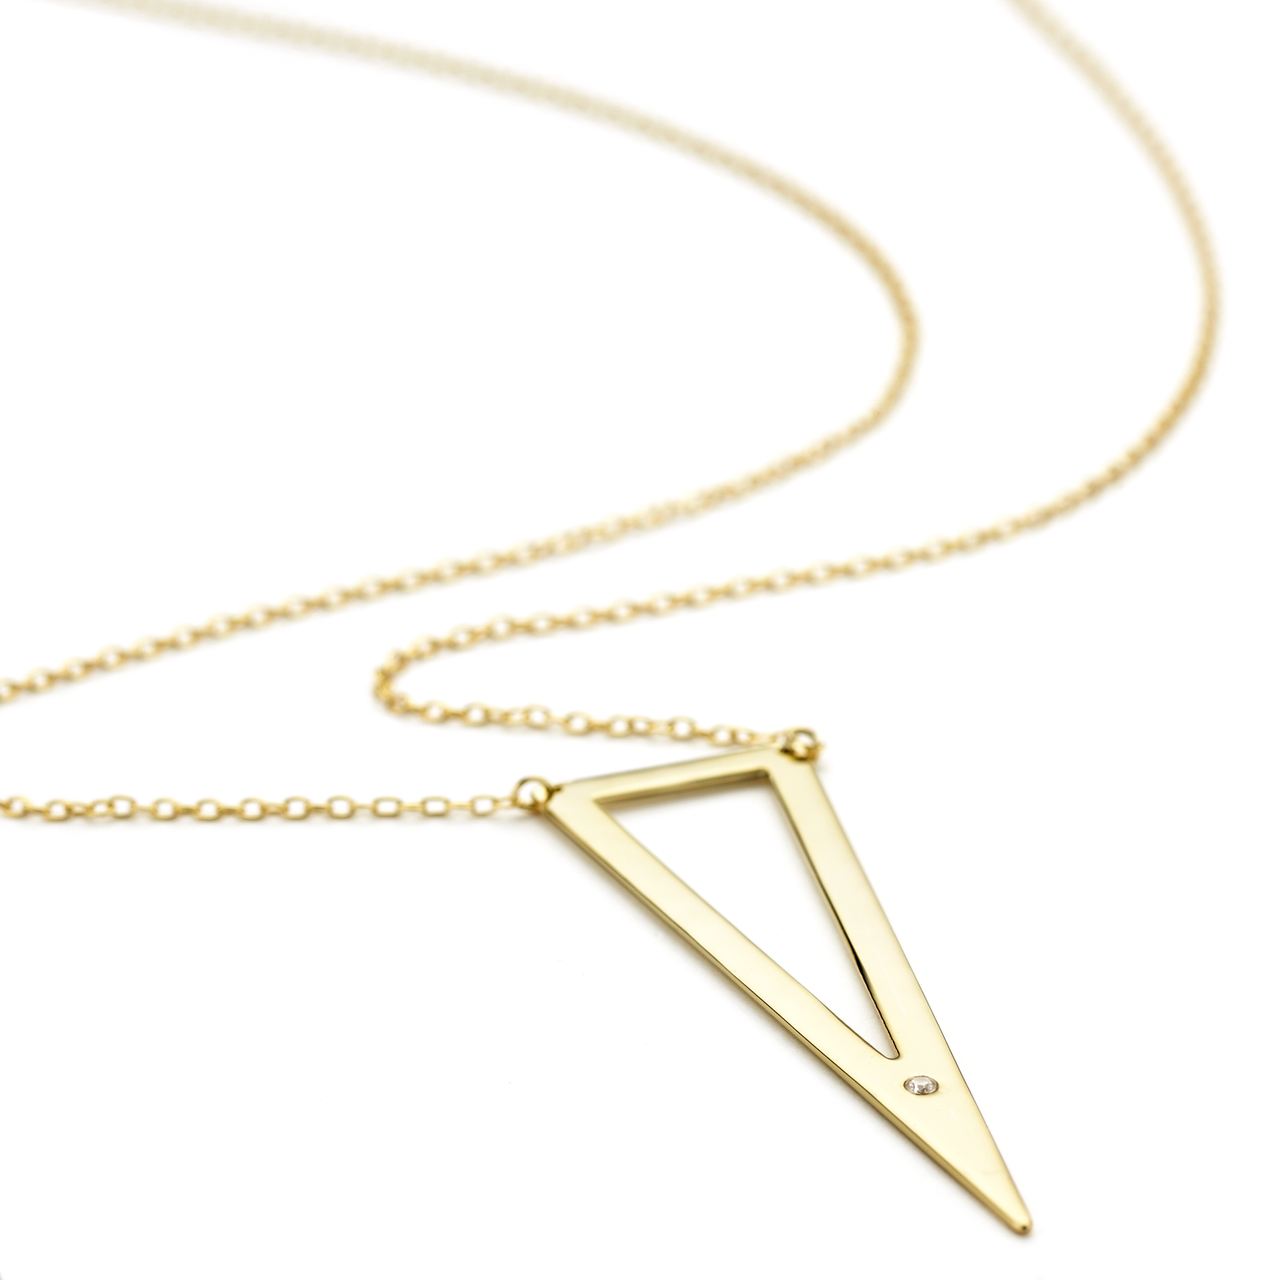 low eminem via pendant women metal for in store dp jewellery prices online mazzini at silver india buy triangle necklace triangular rapper inspired amazon famous